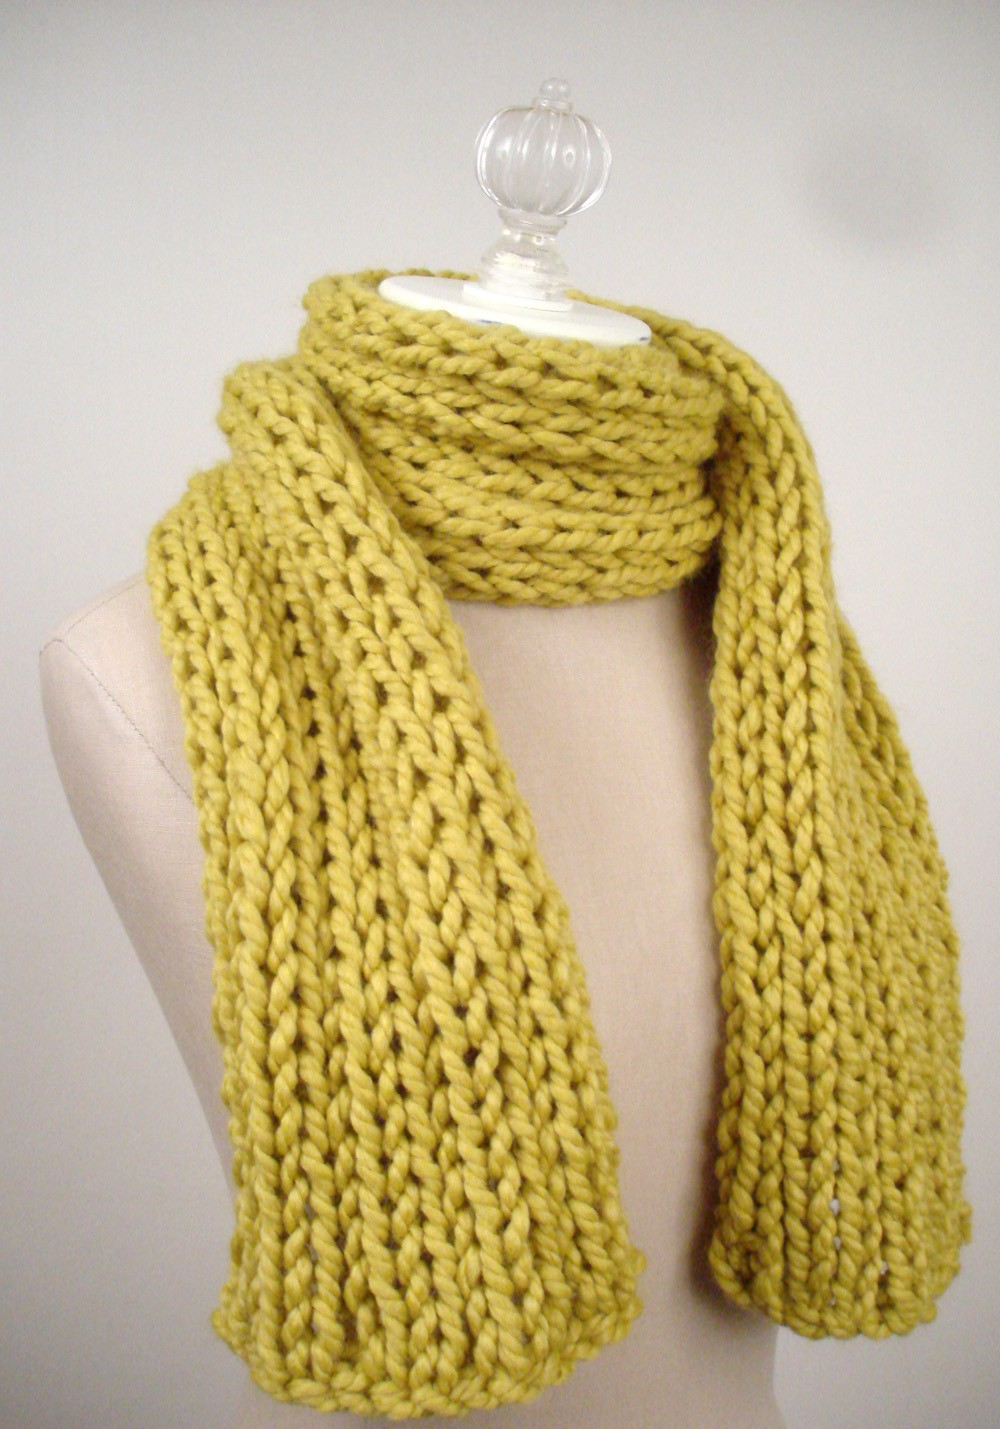 Knitting Pattern For Basic Scarf : EASY KNIT SCARF PATTERNS   Free Patterns